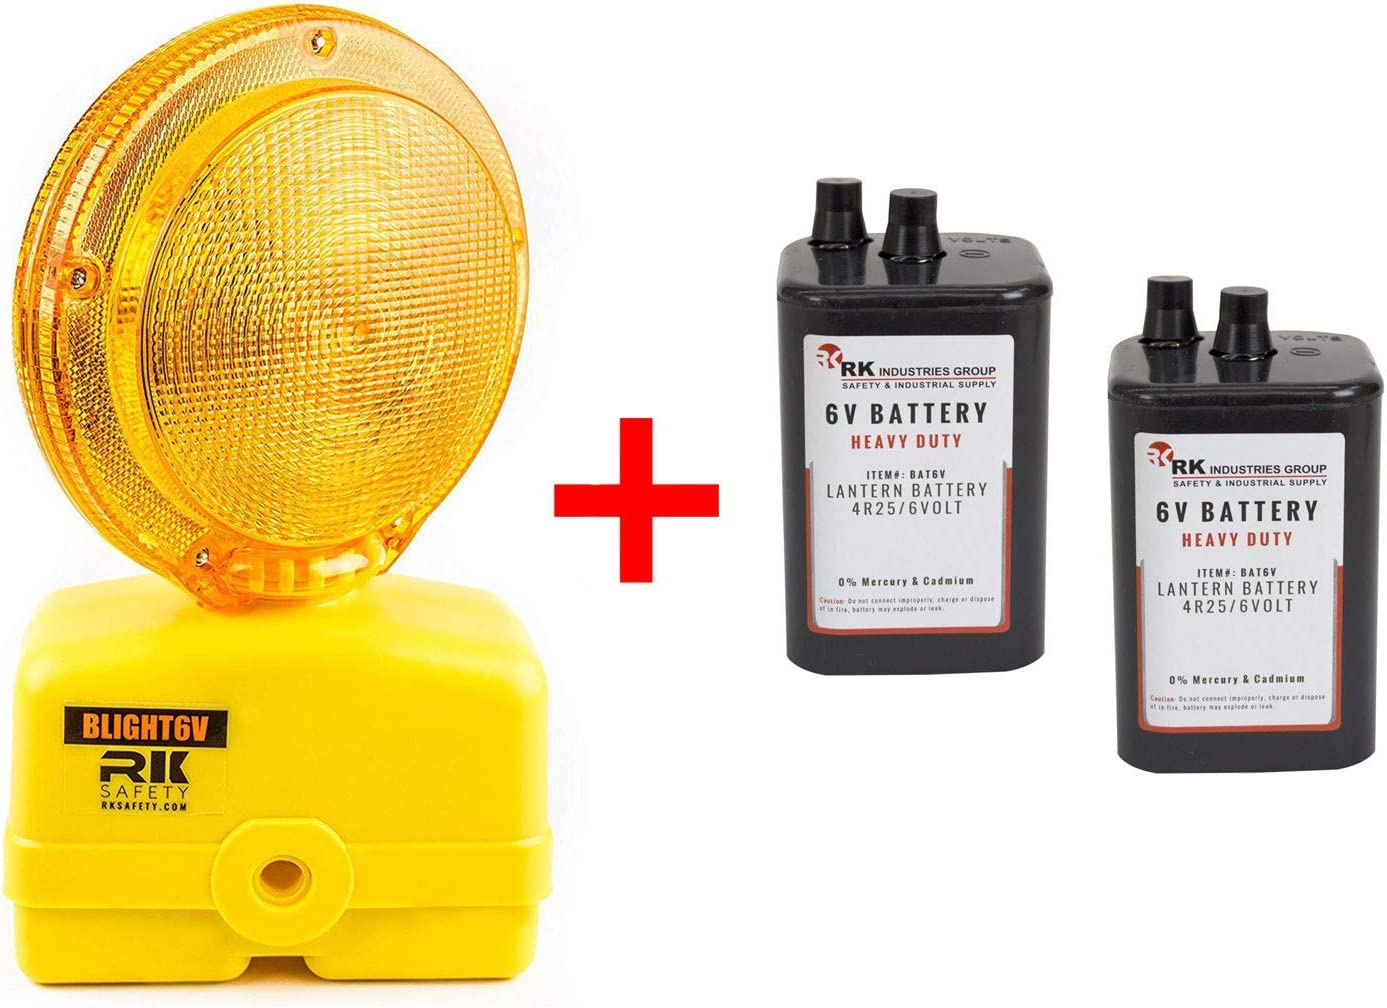 Pack of 24 Troy Safety 6 Volt Lantern Battery 4R25